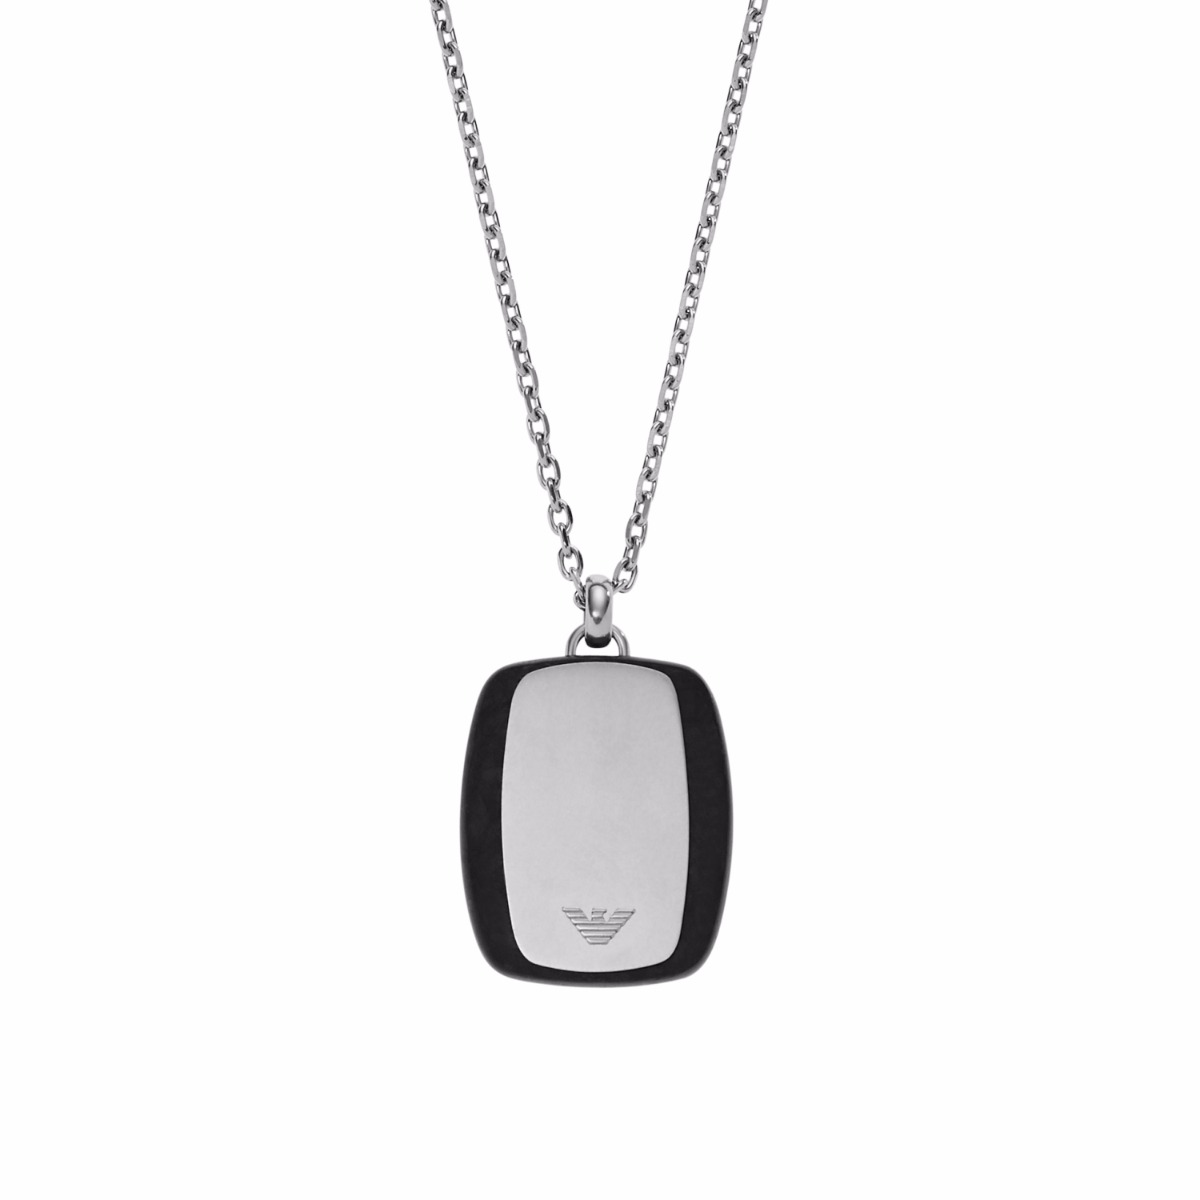 Details about Emporio Armani Men's Two-Tone Dog Tag Logo Pendant Necklace  EGS2187, in Gift Box